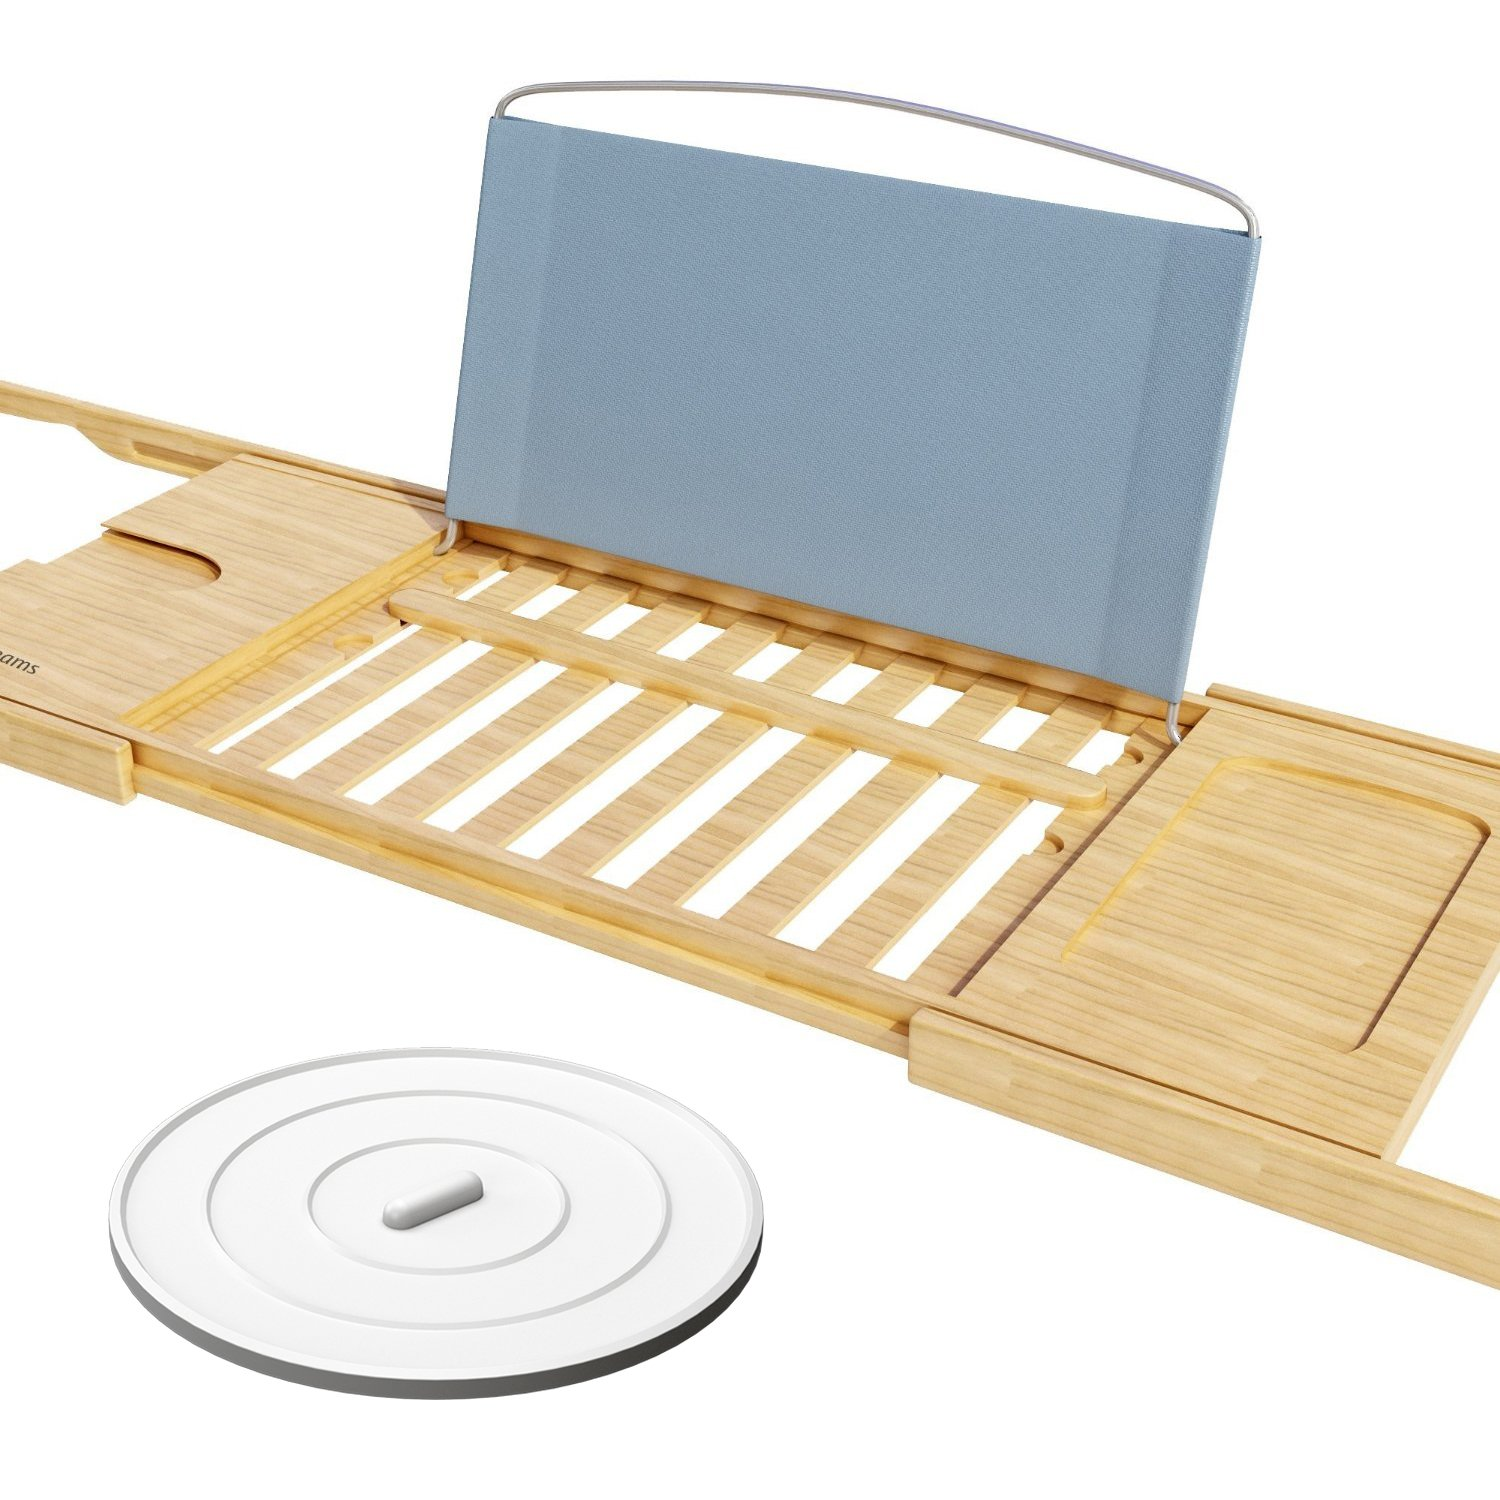 Amazon.com: Bamboo Bathtub Caddy Tray with Extending Sides and Drain ...